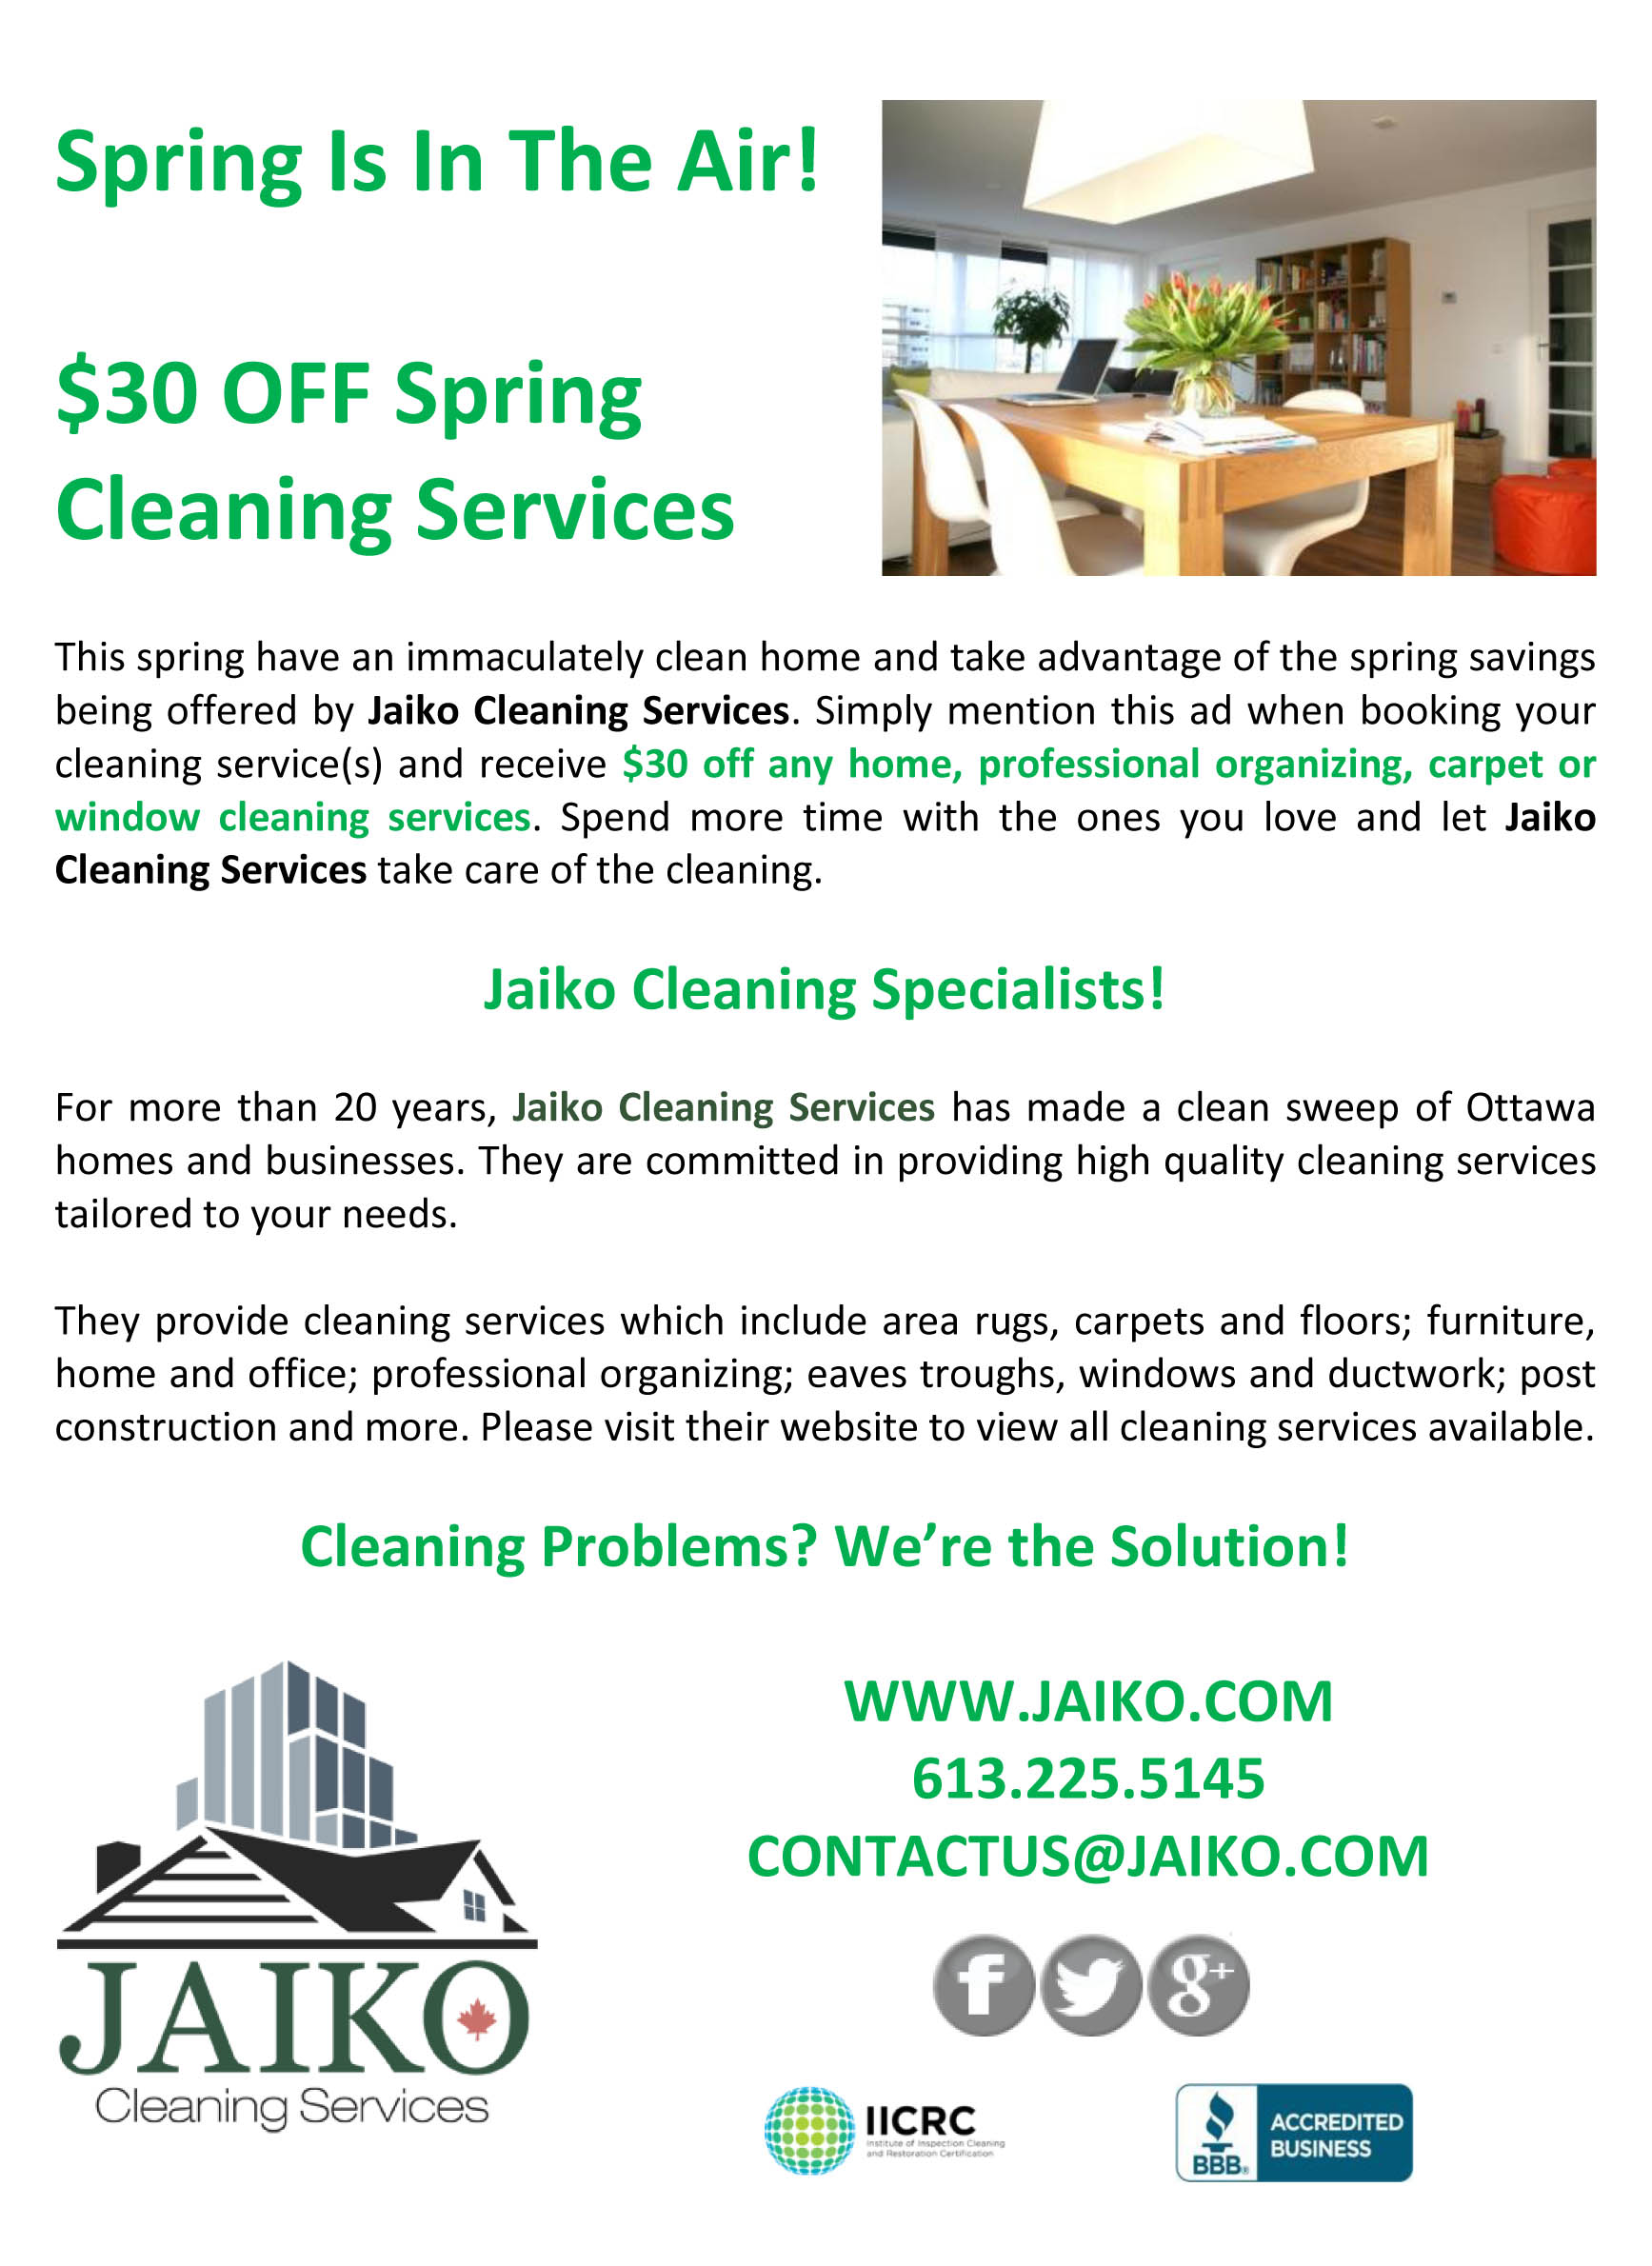 Spring cleaning special $30 OFF home, professional organizing, carpet or window cleaning services.